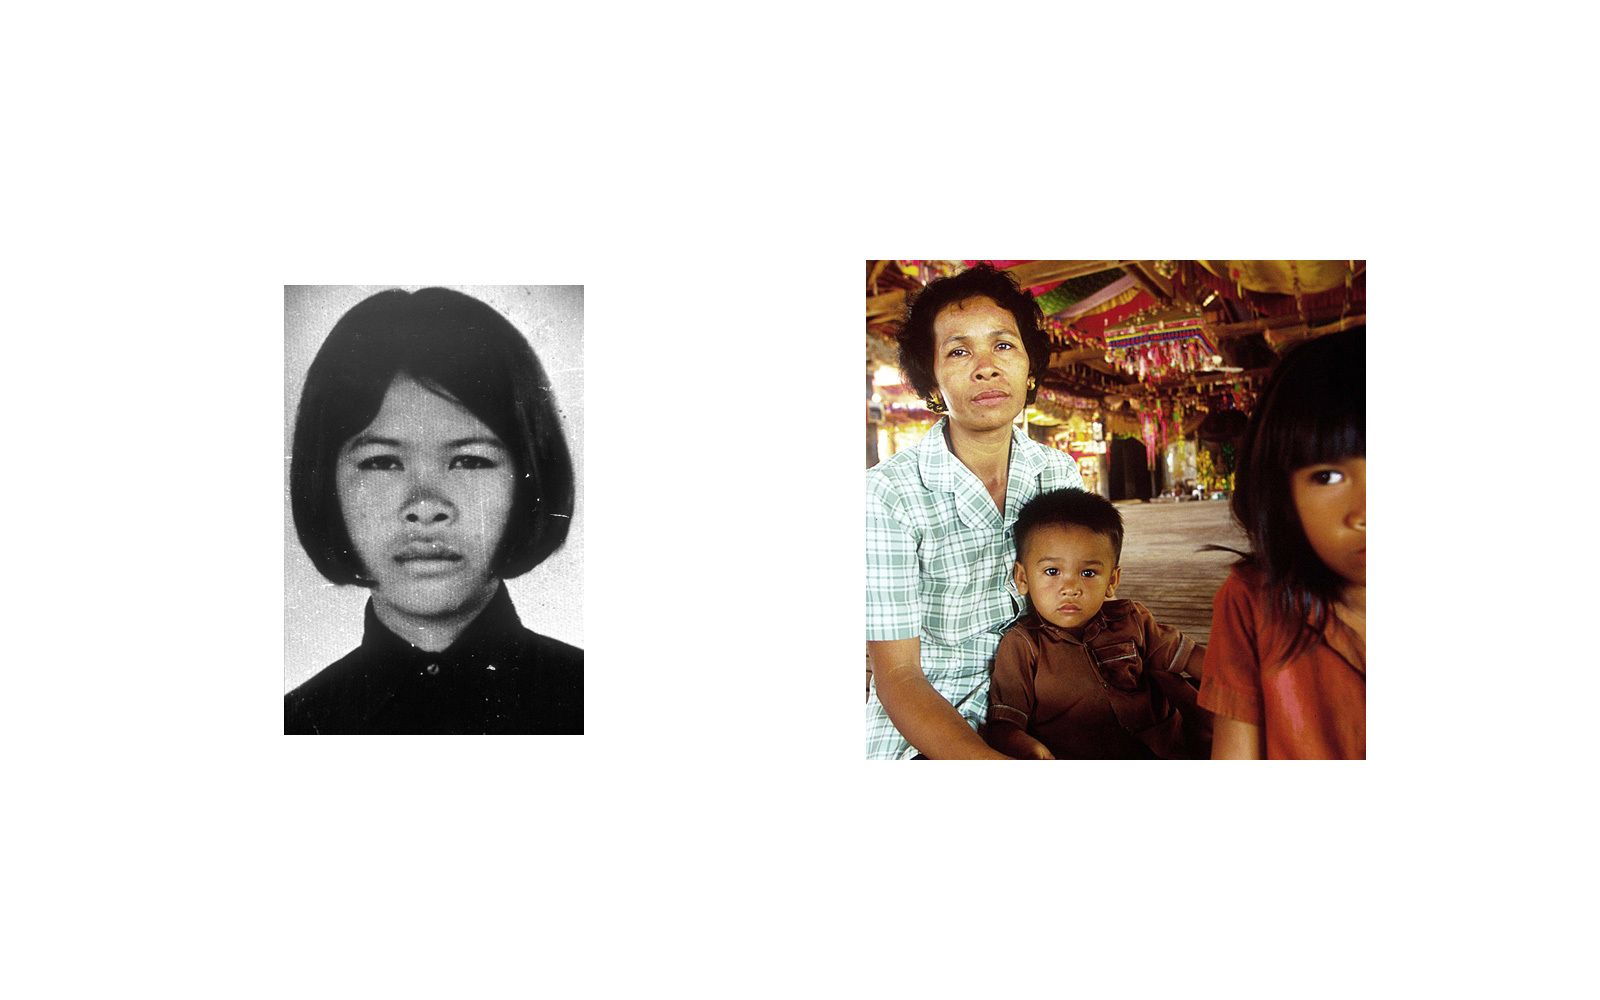 Lor Sim , a former Khmer Rouge soldier, was a guard at Tuol Sleng(S-21) Prison.